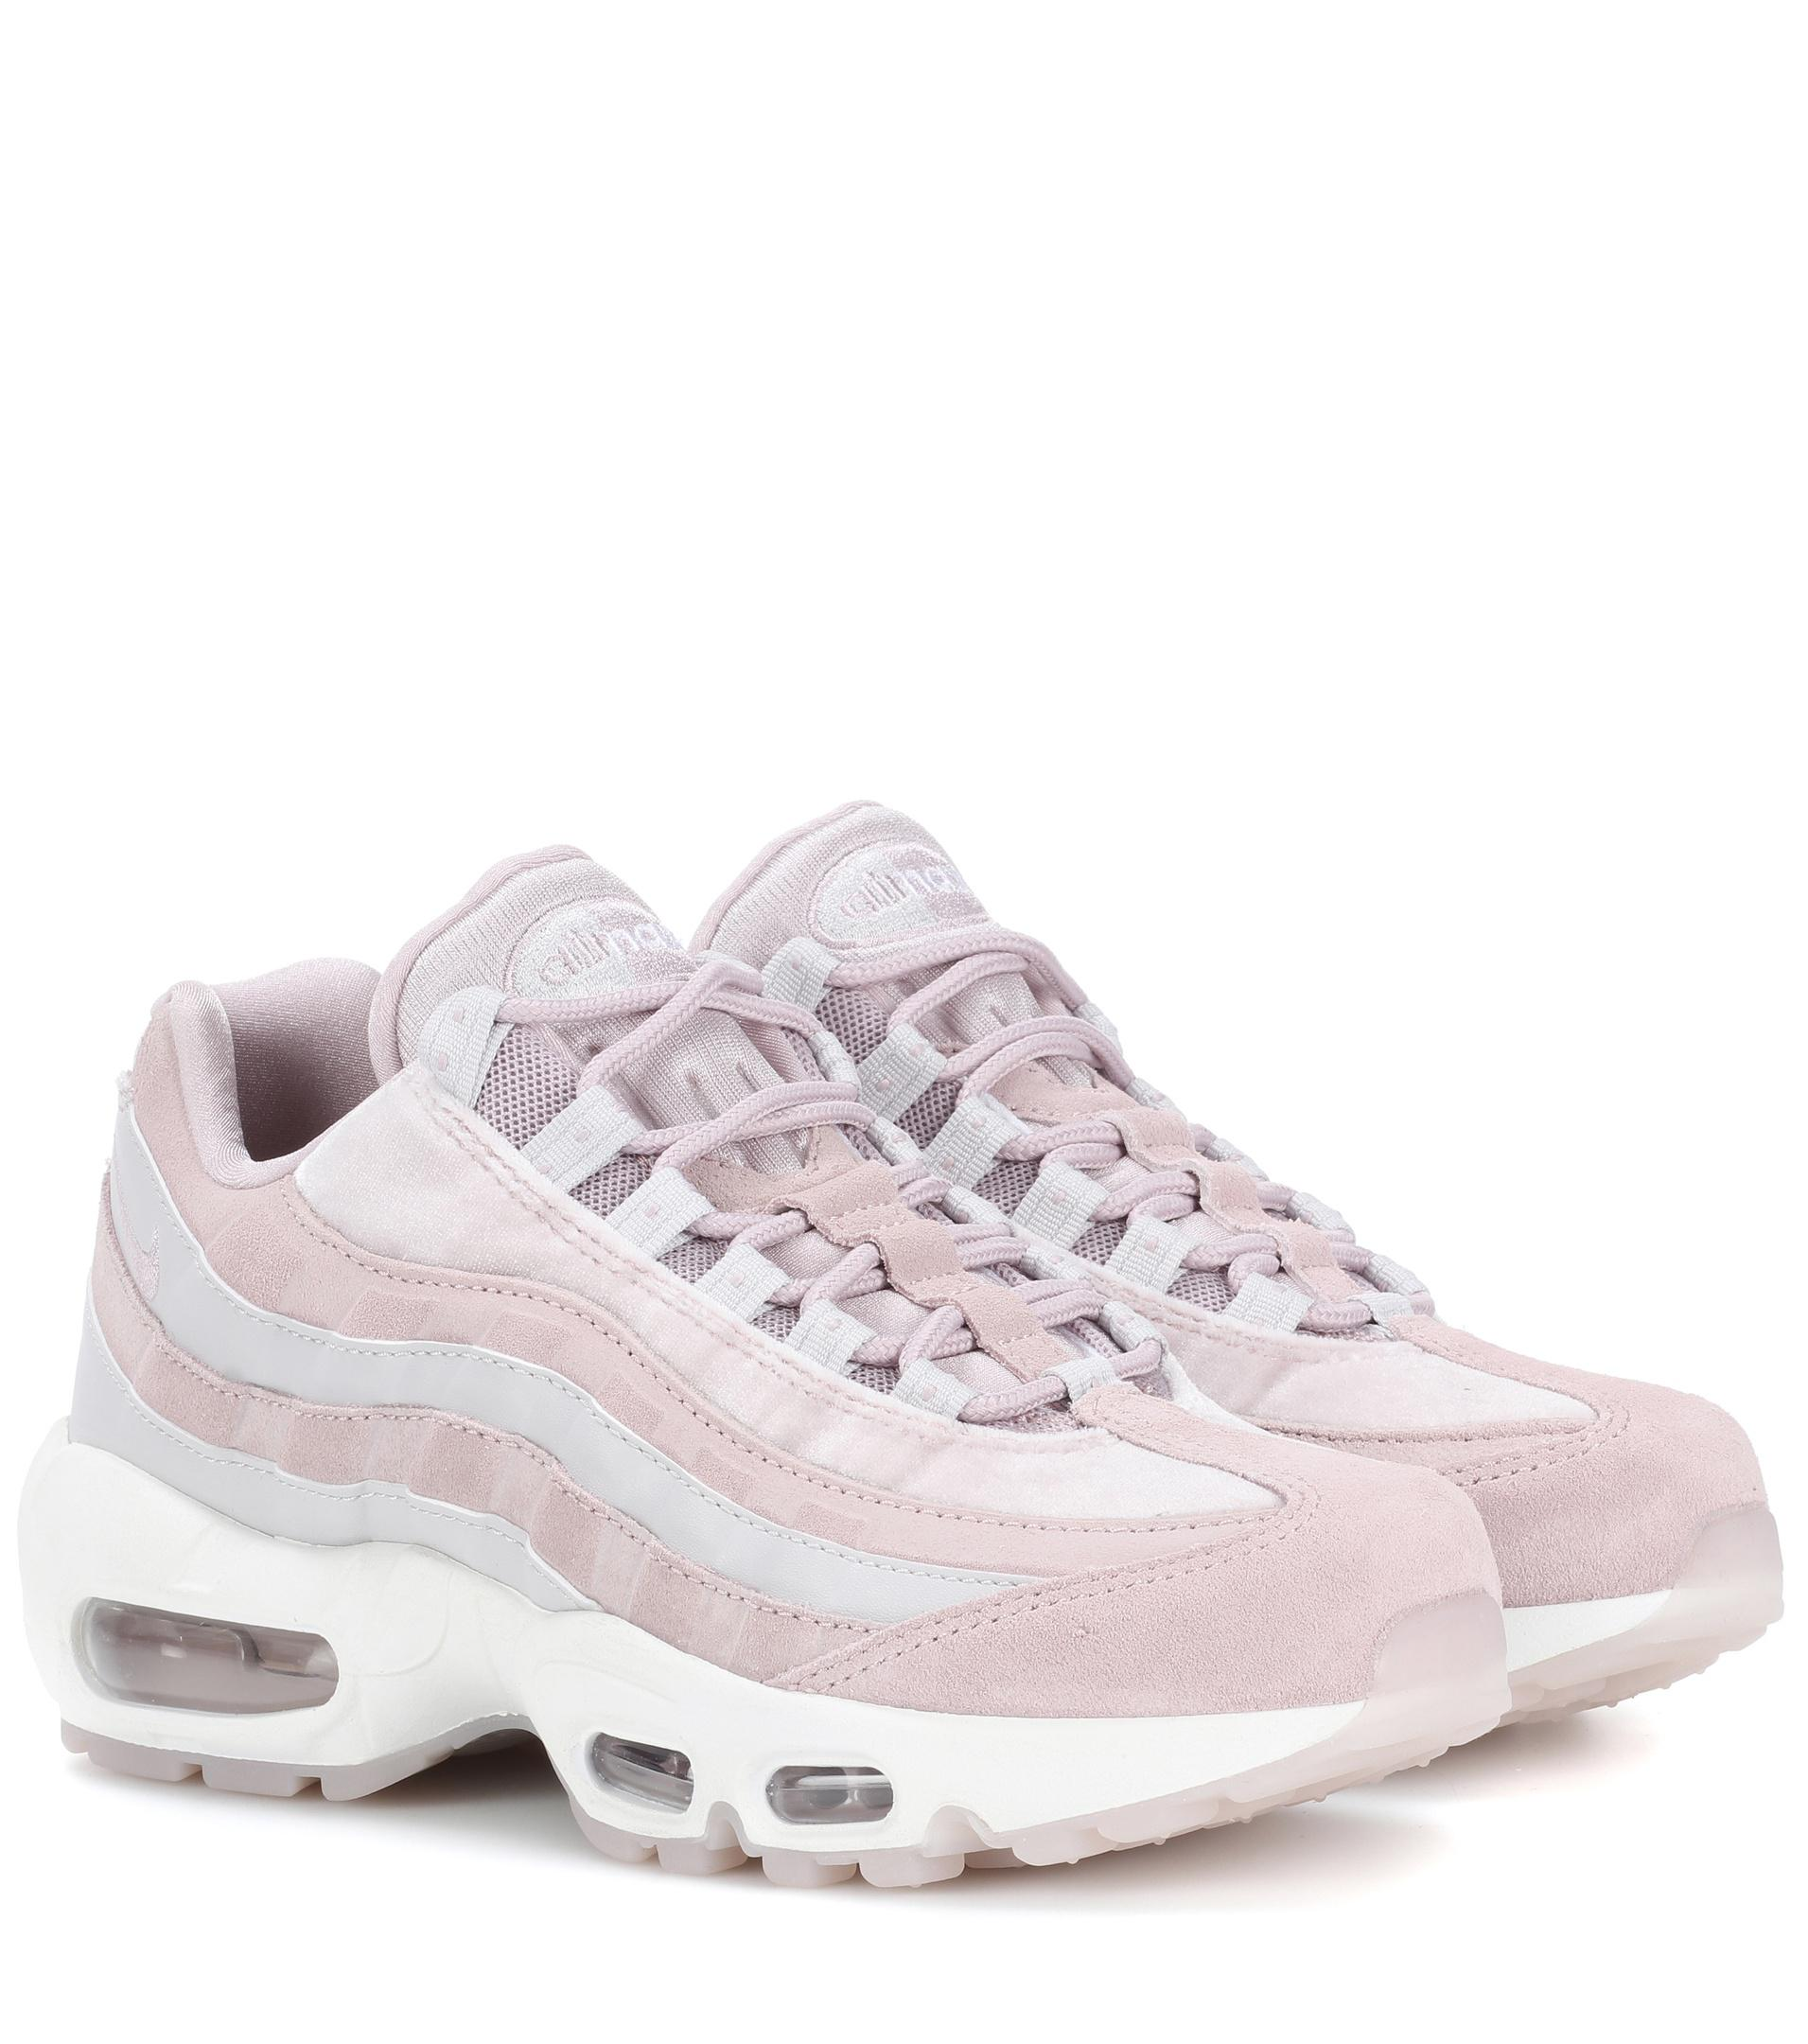 Nike. Women's Pink Air Max 95 Leather Sneakers